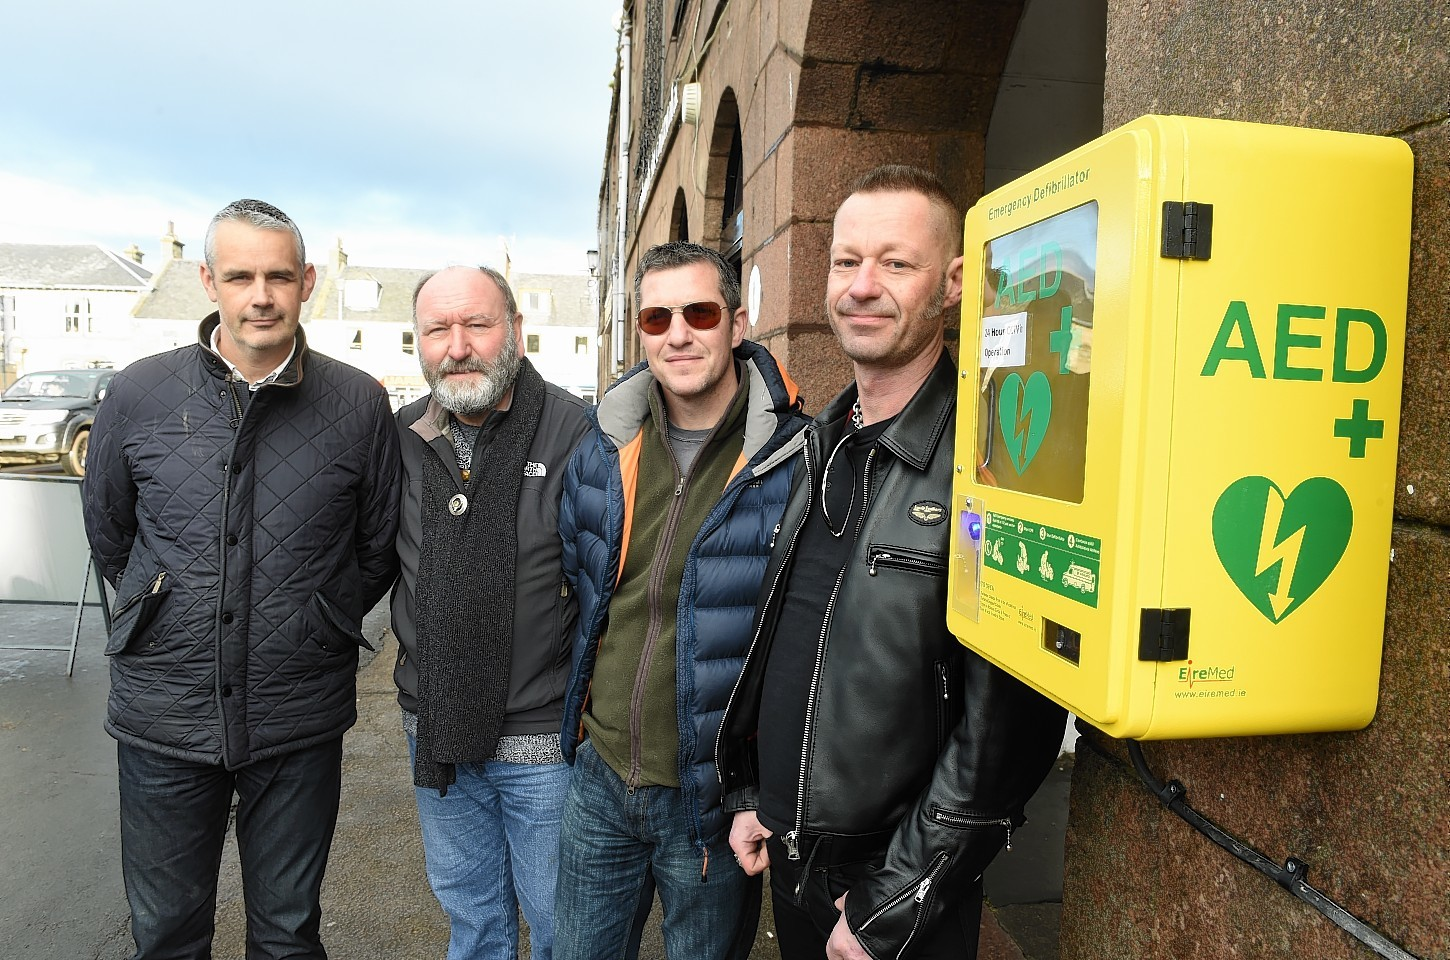 Stonehaven's new defibrillator has arrived